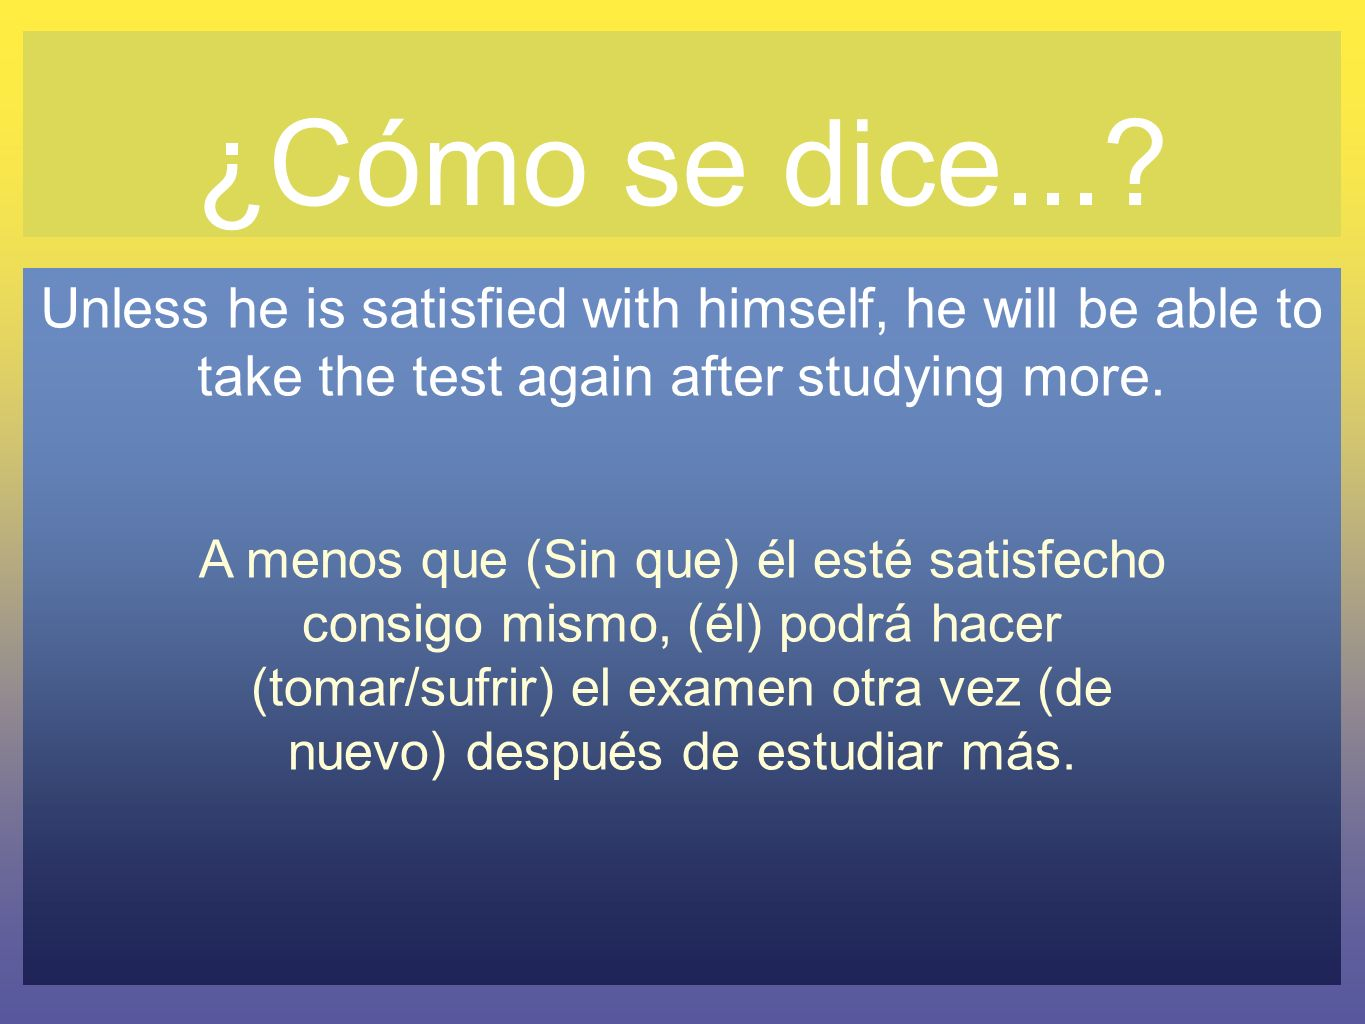 ¿Cómo se dice...? Unless he is satisfied with himself, he will be able to take the test again after studying more. A menos que (Sin que) él esté satis